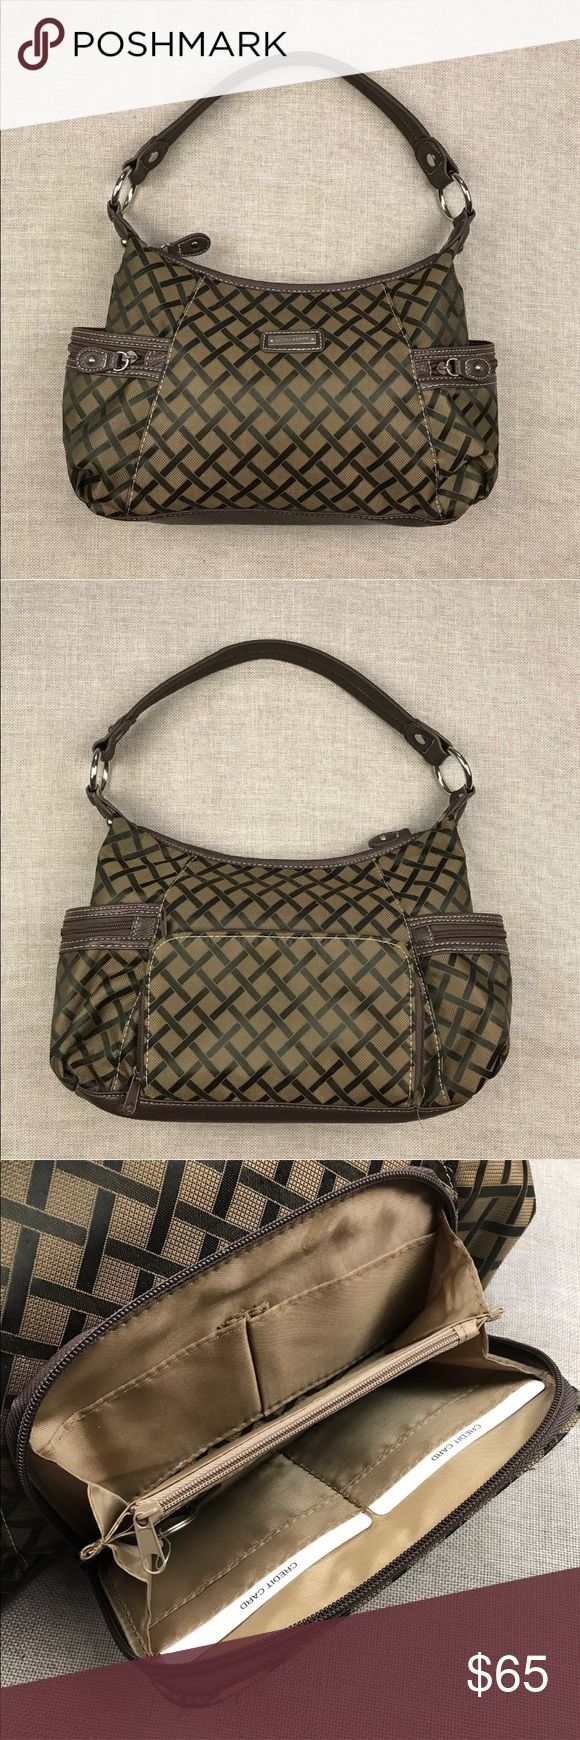 """Laura Scott Brown Plaid Hobo Shoulder Bag NWOT Laura Scott Brown Plaid Hobo Shoulder Bag NWOT  No flaws  Measurements: 14"""" x 9"""" x 5""""  Please, review pictures. You will get the item shown. Smoke & pet free home. Laura Scott Bags Shoulder Bags"""